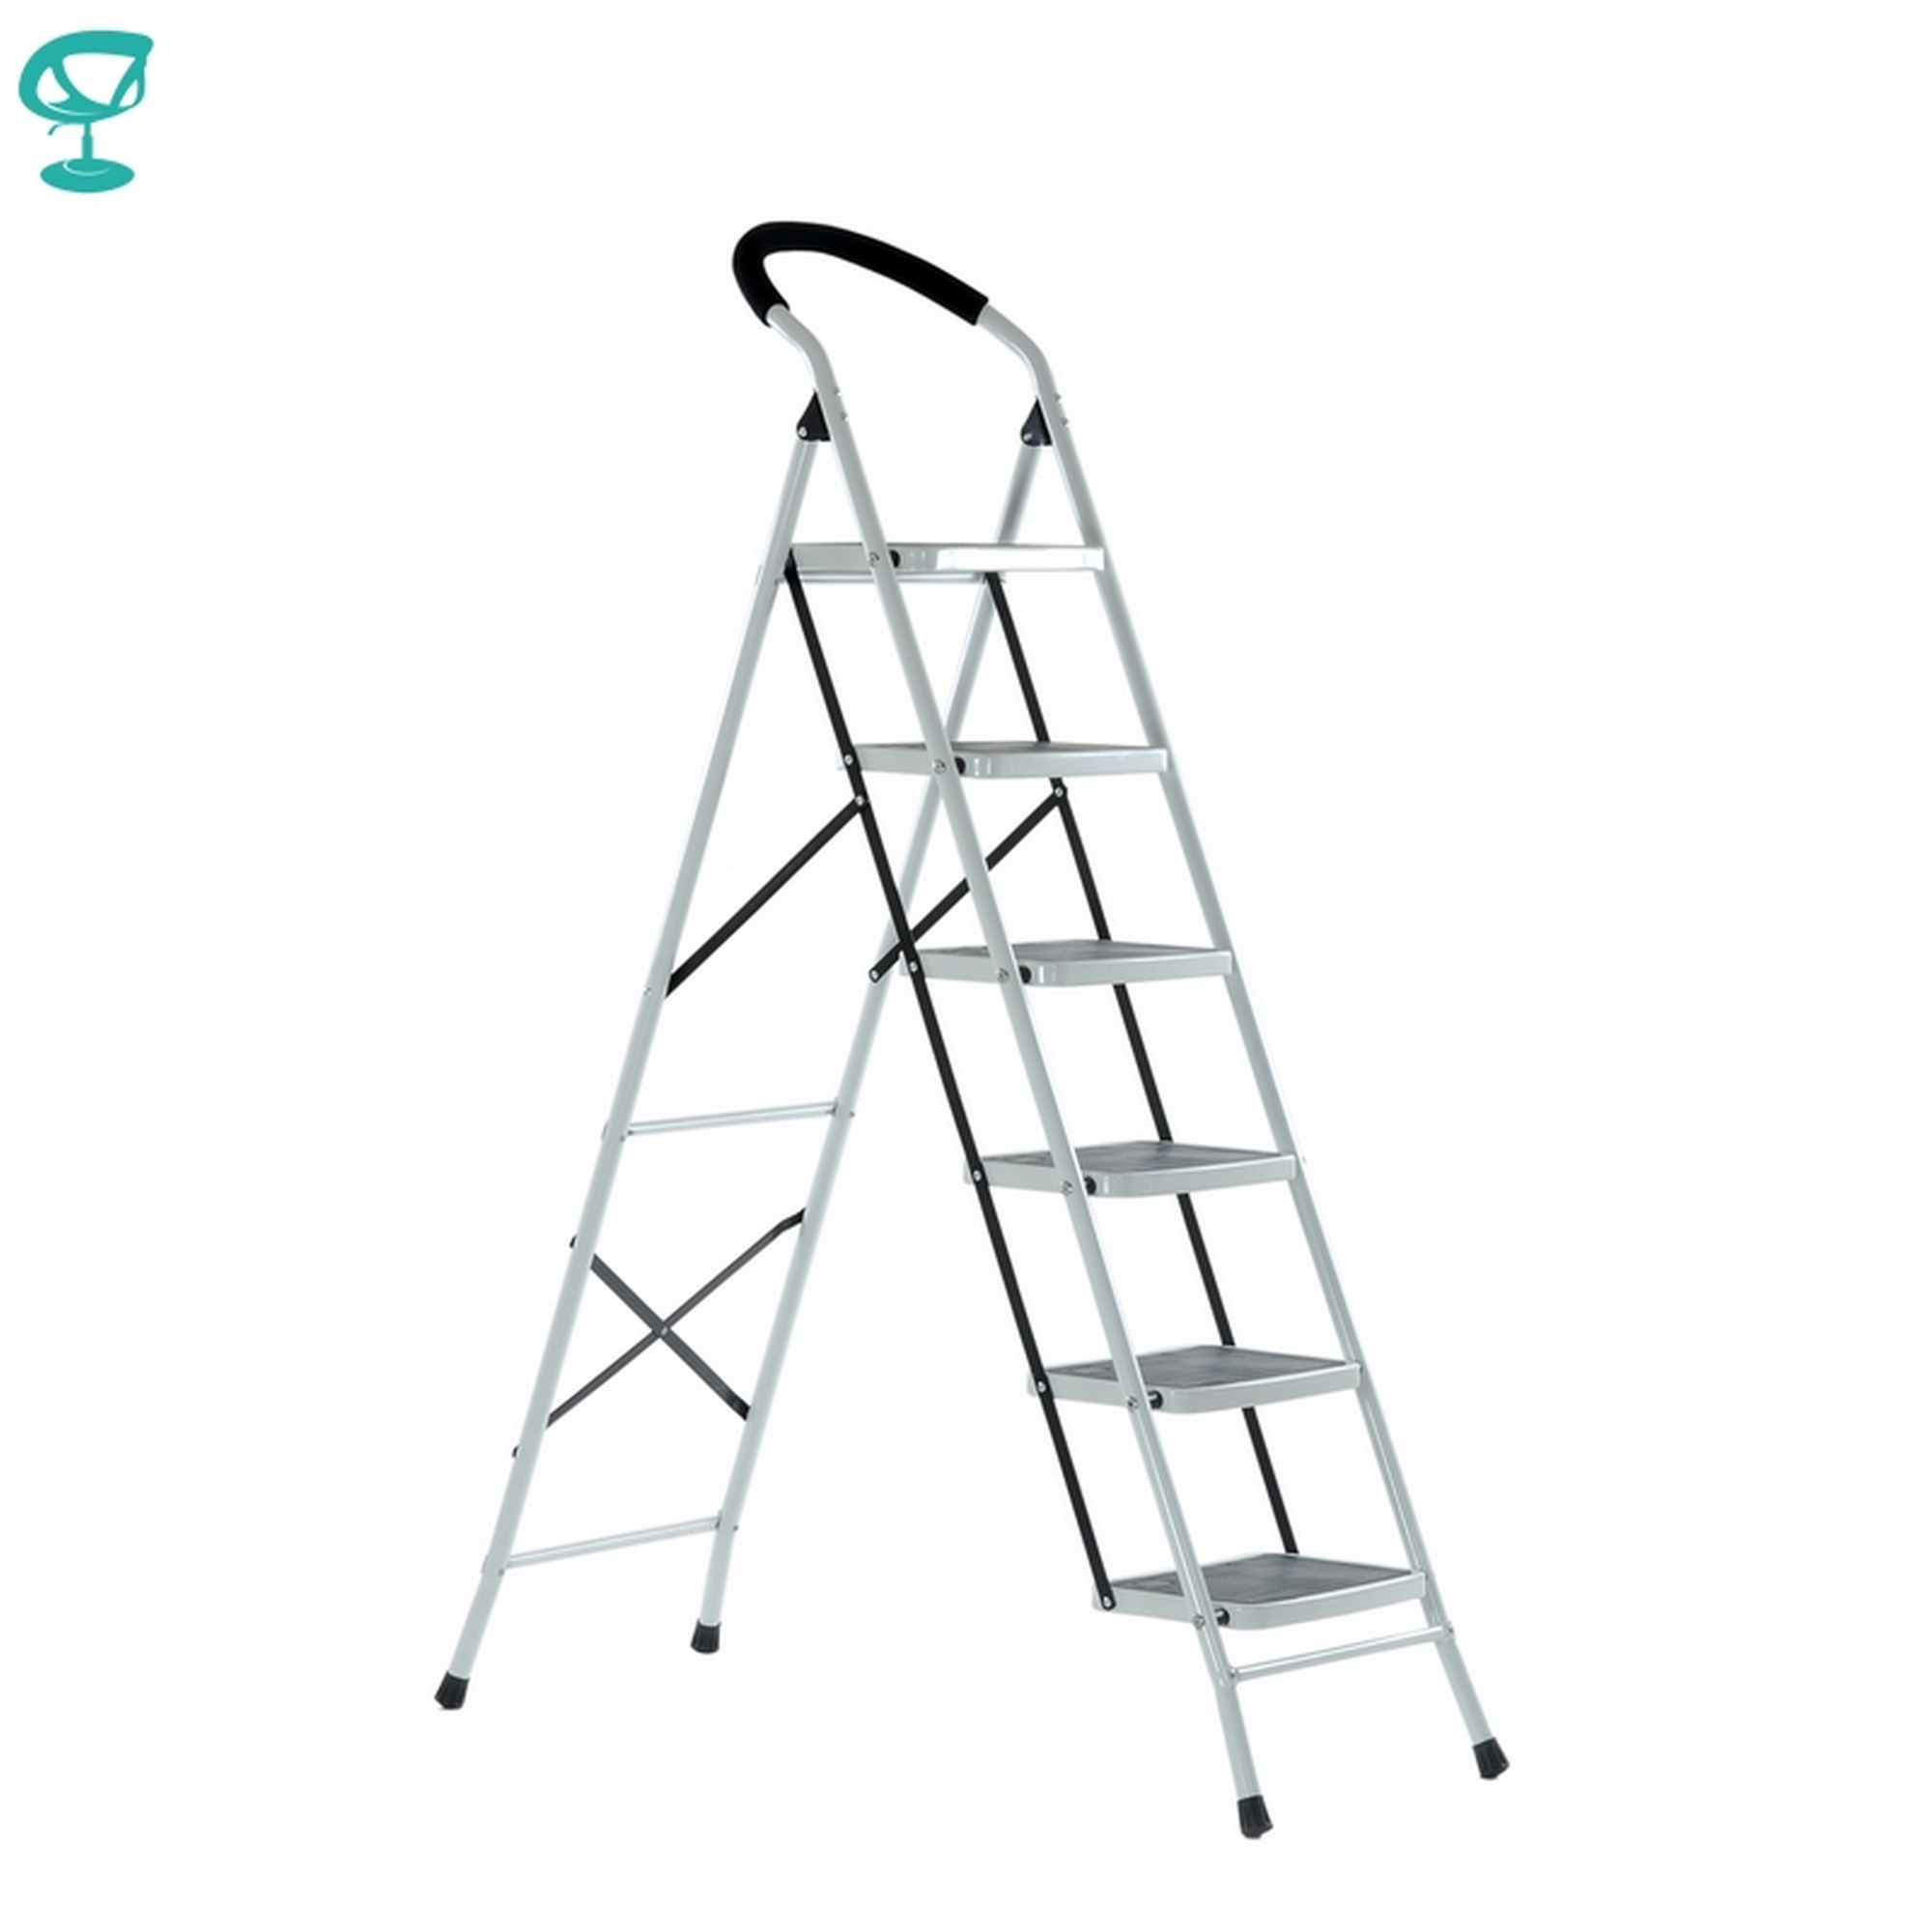 95672 Barneo ST-36 Ladder Steel 6 Stages White Single Side Max Load 150 Kg Free Shipping To Russia